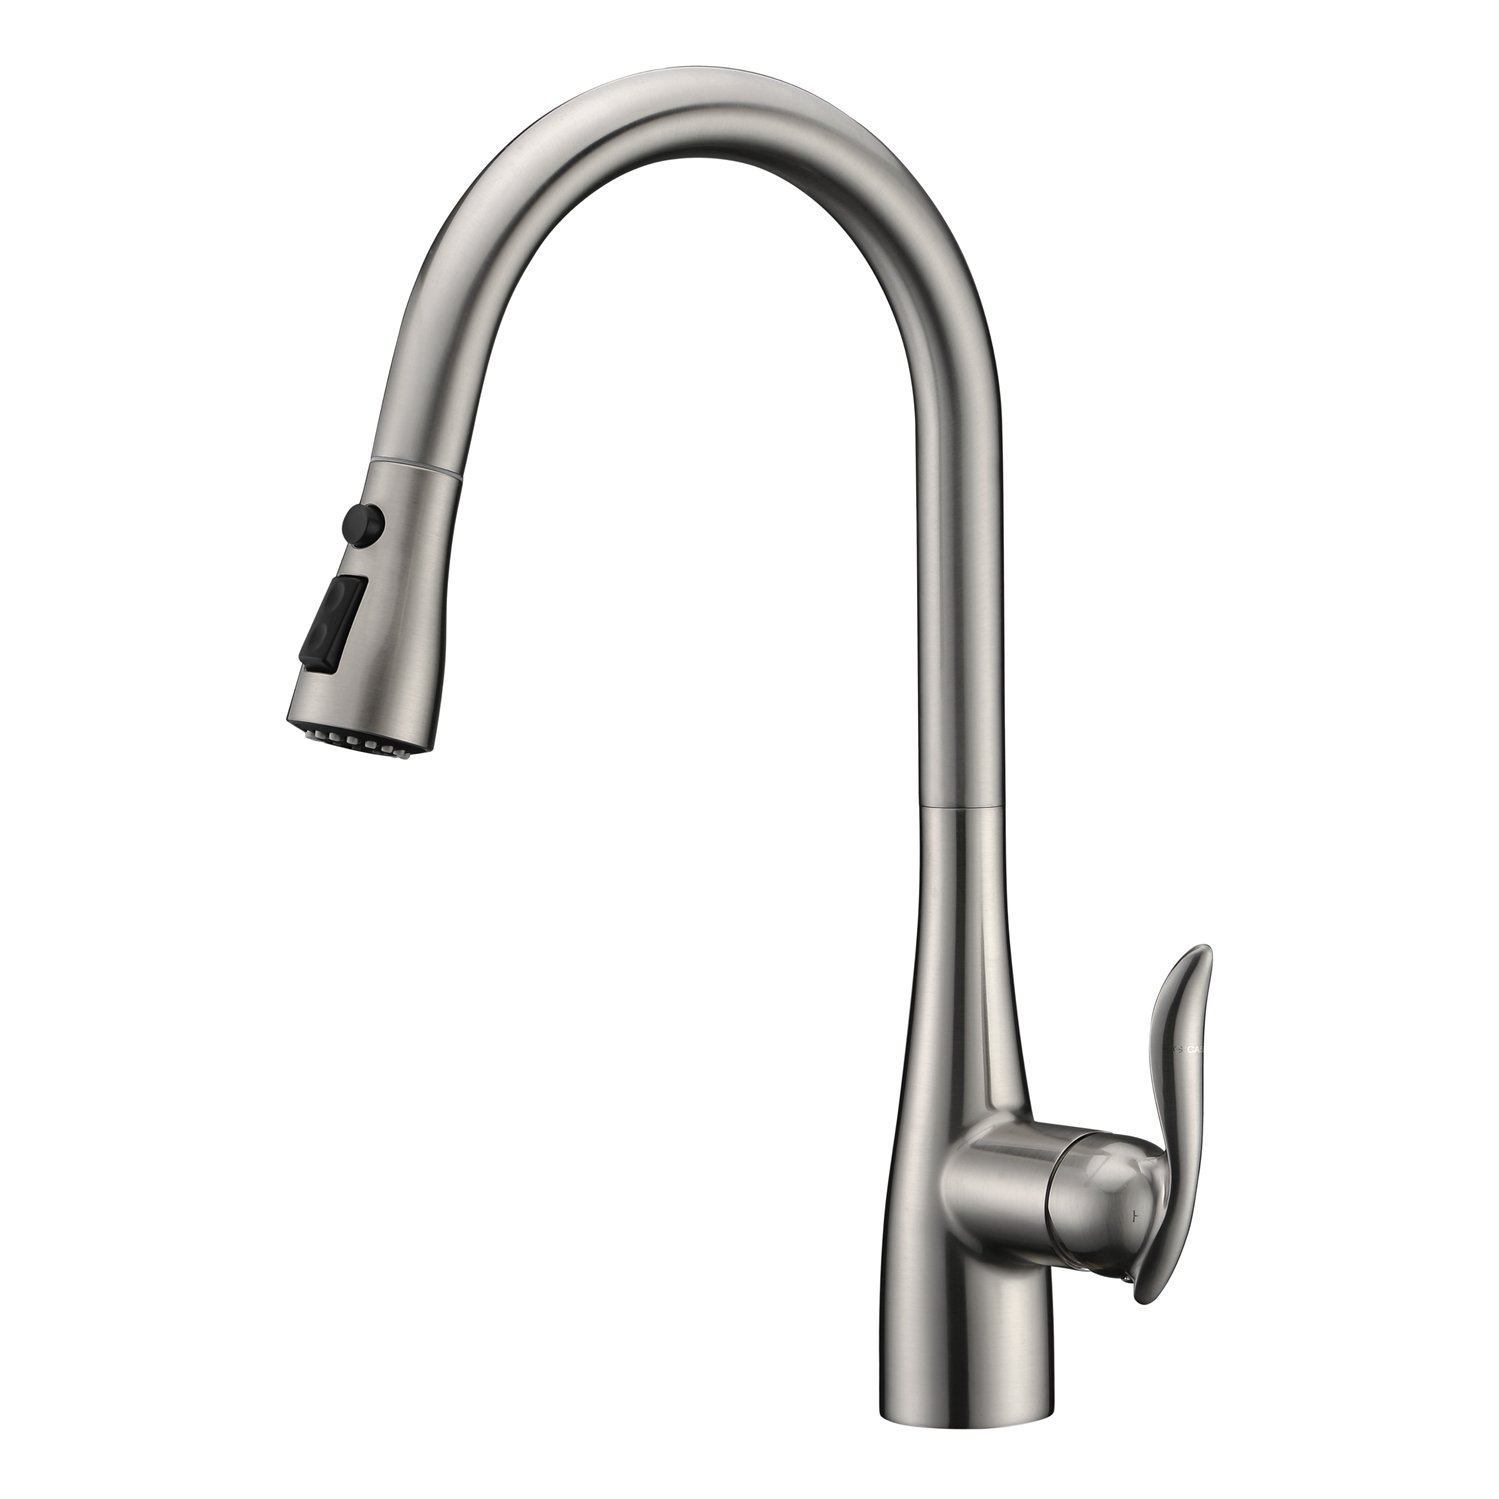 GICASA Faucet Best Modern Stainless Steel Single Handle Pull Down ...